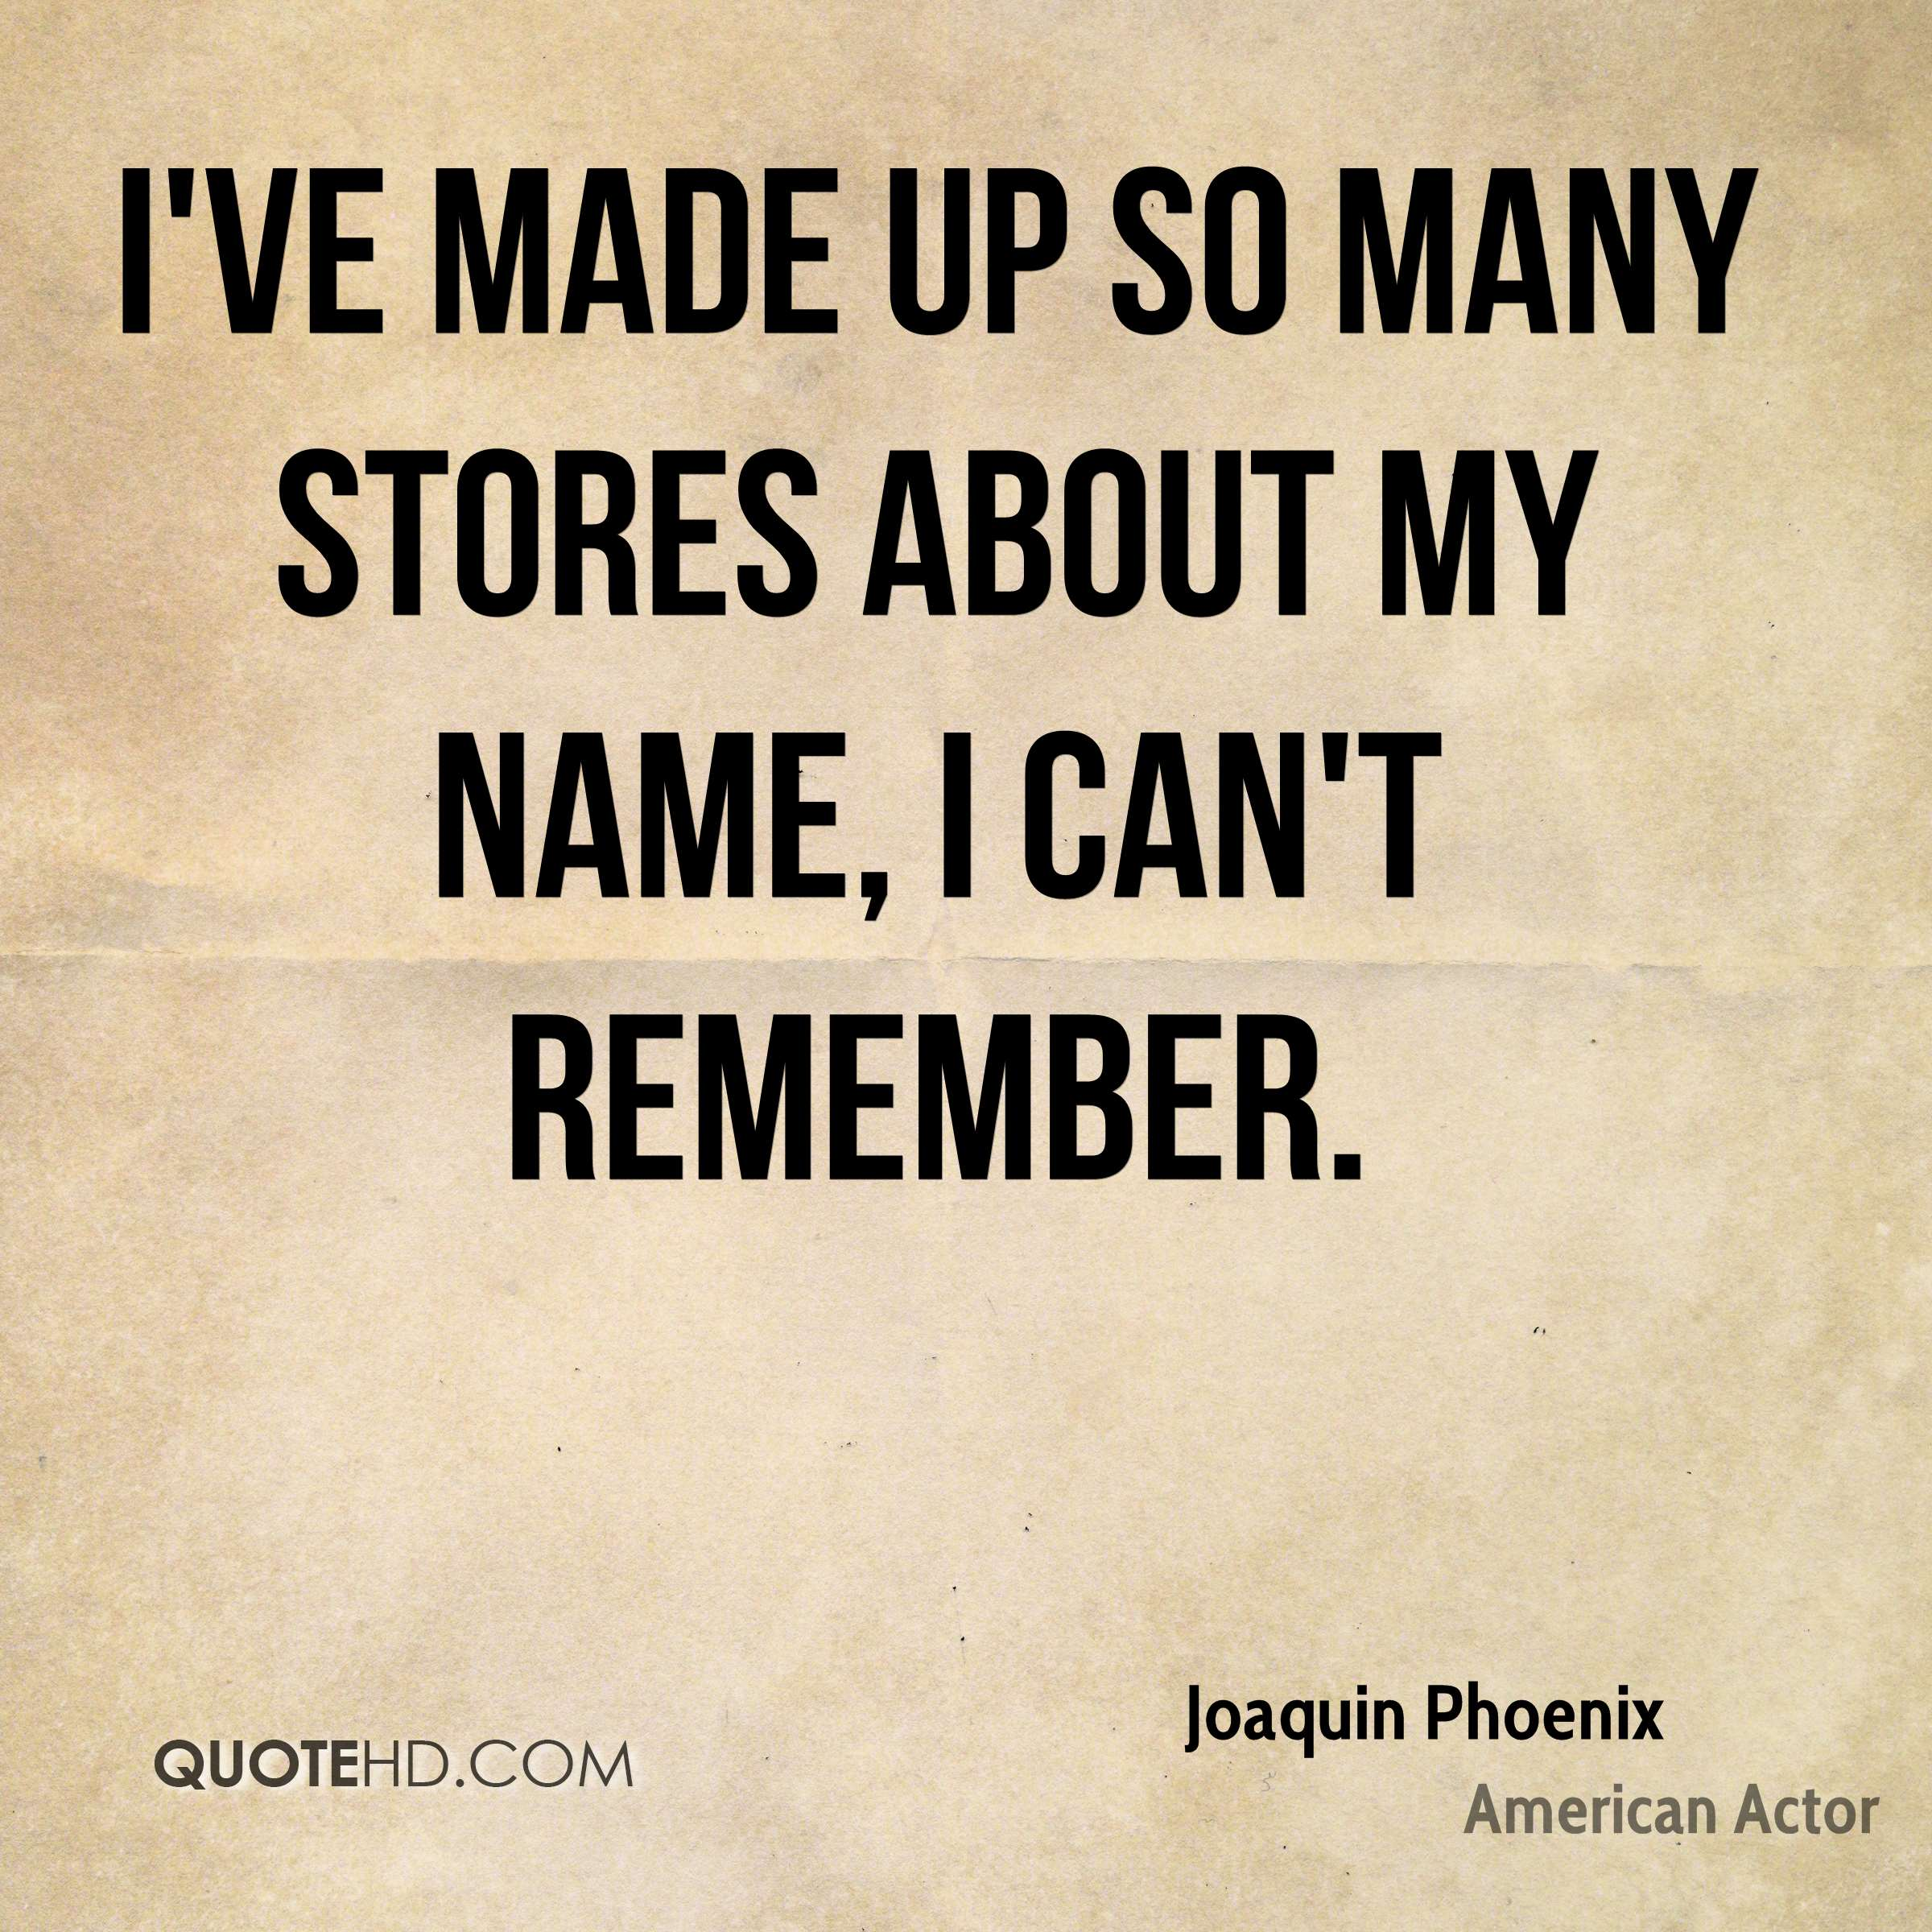 I've made up so many stores about my name, I can't remember.